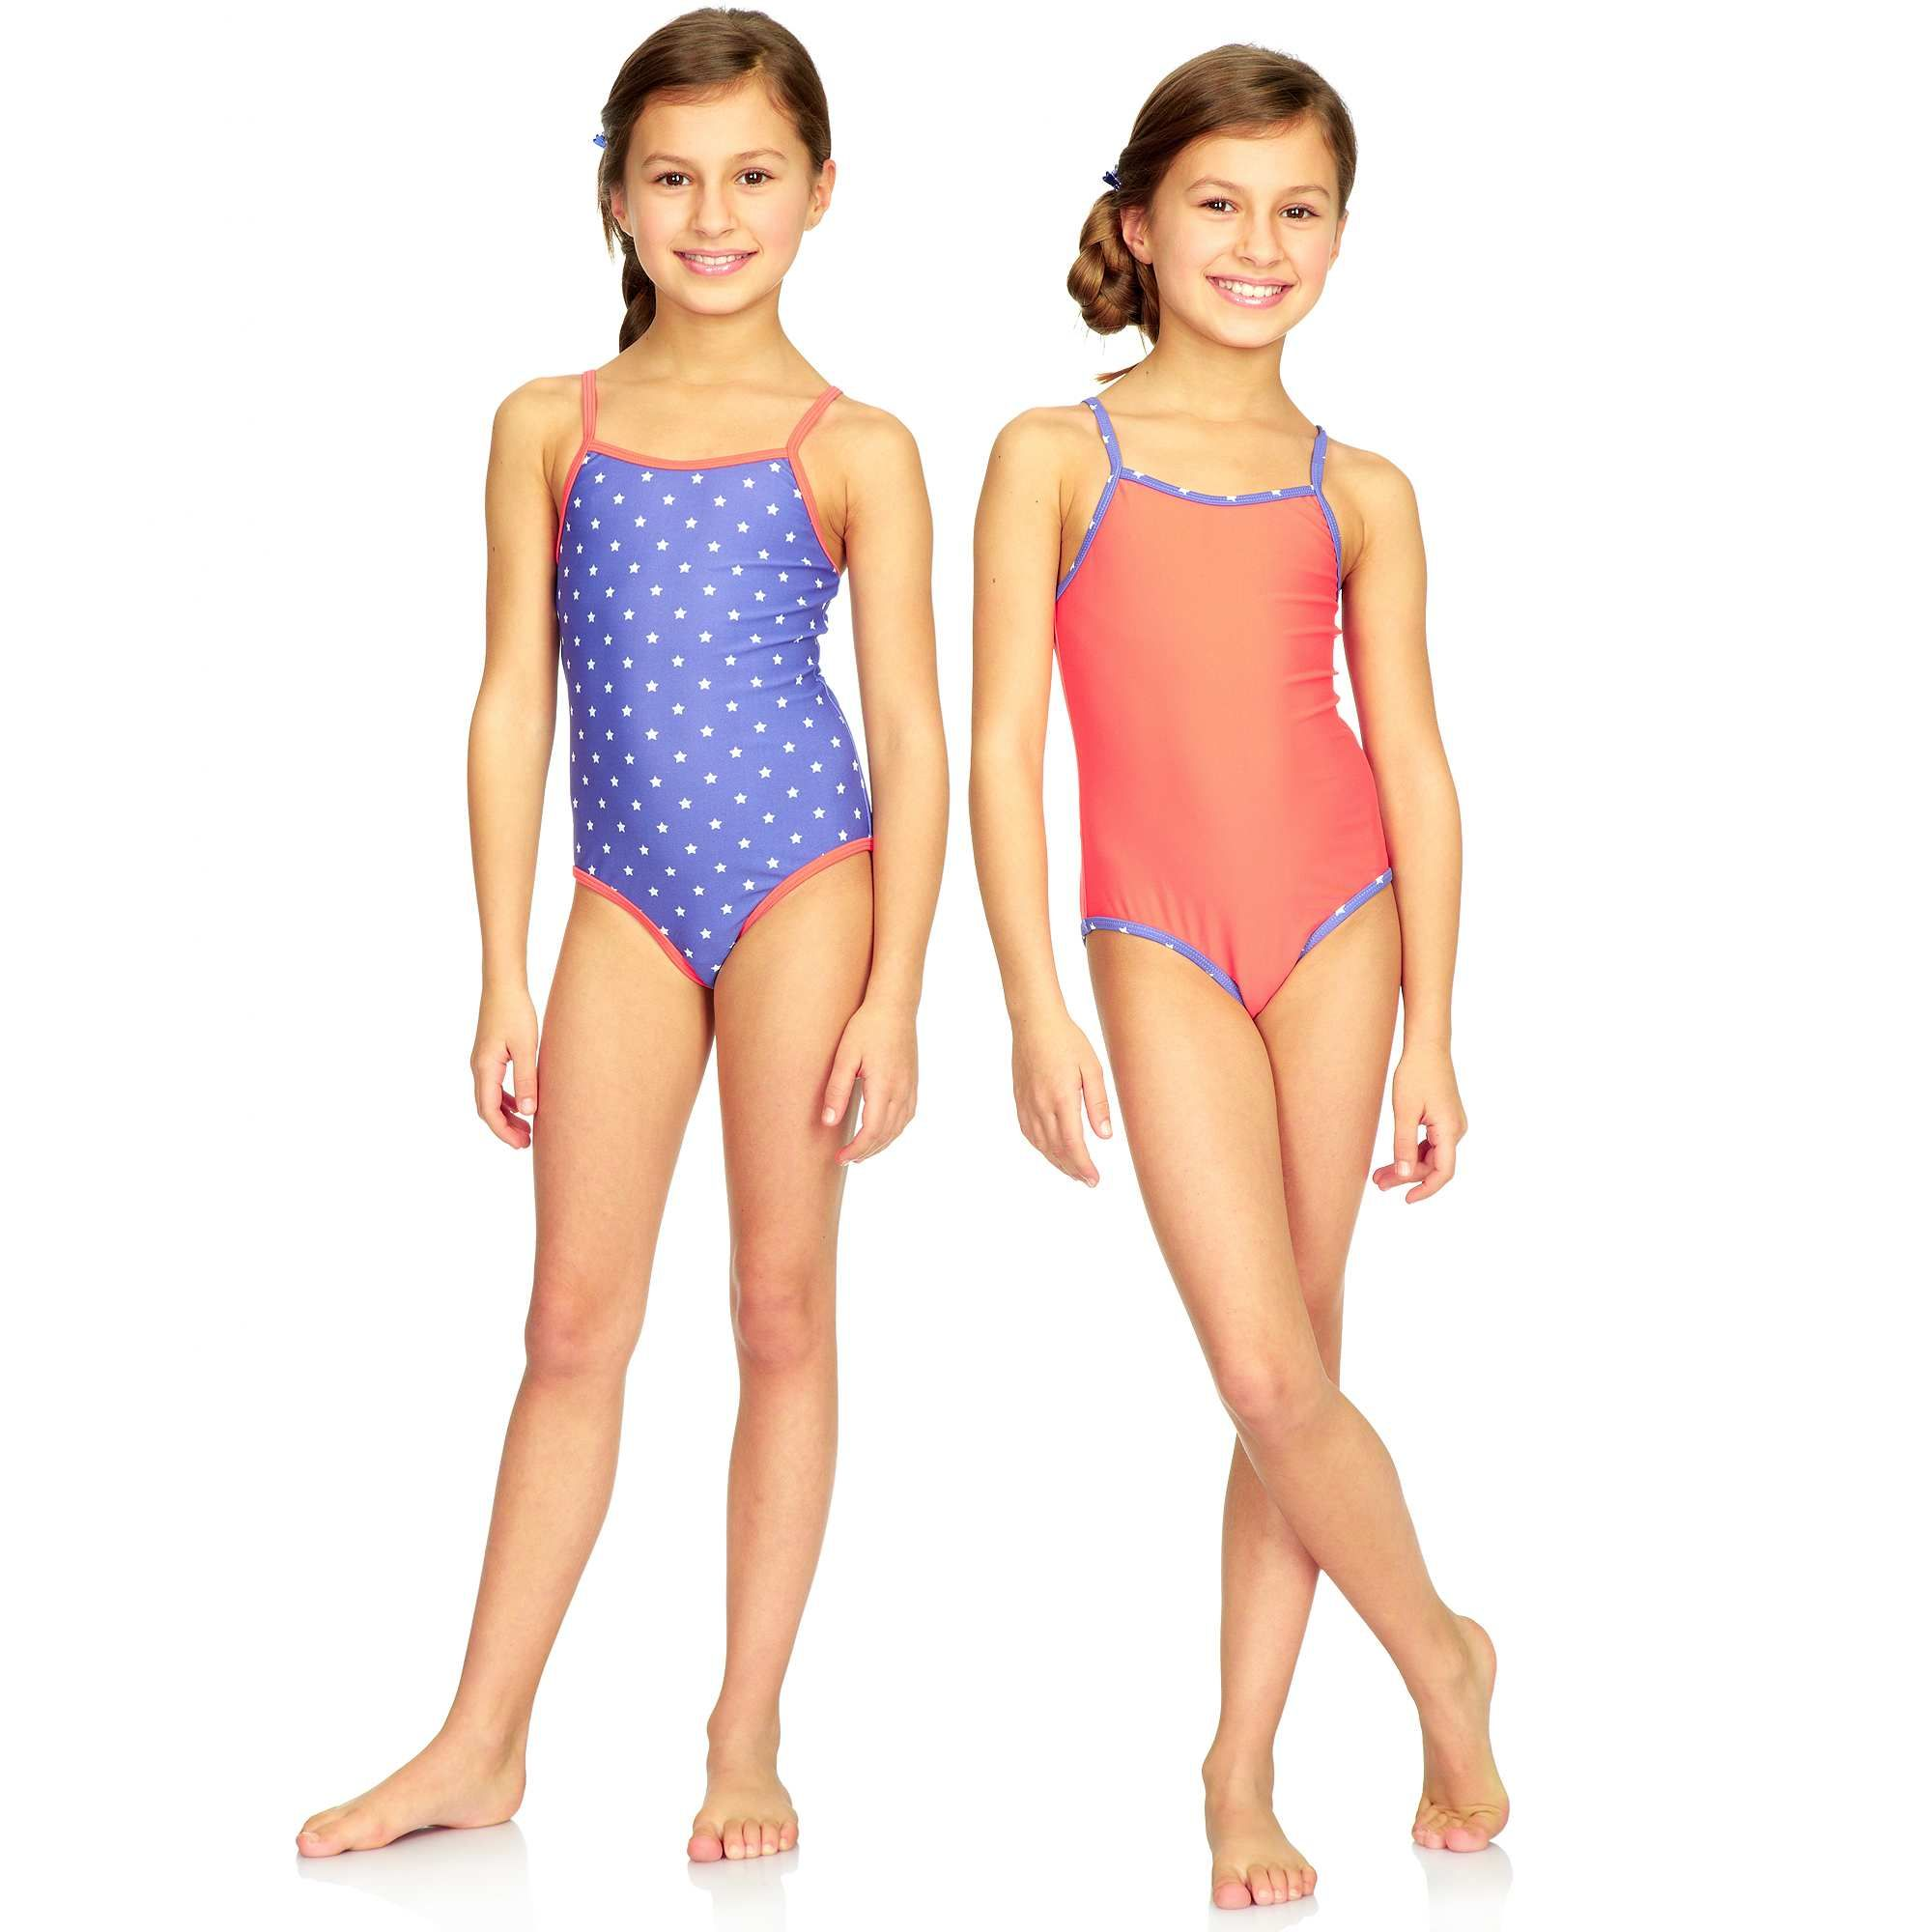 Target girls dresses pictures